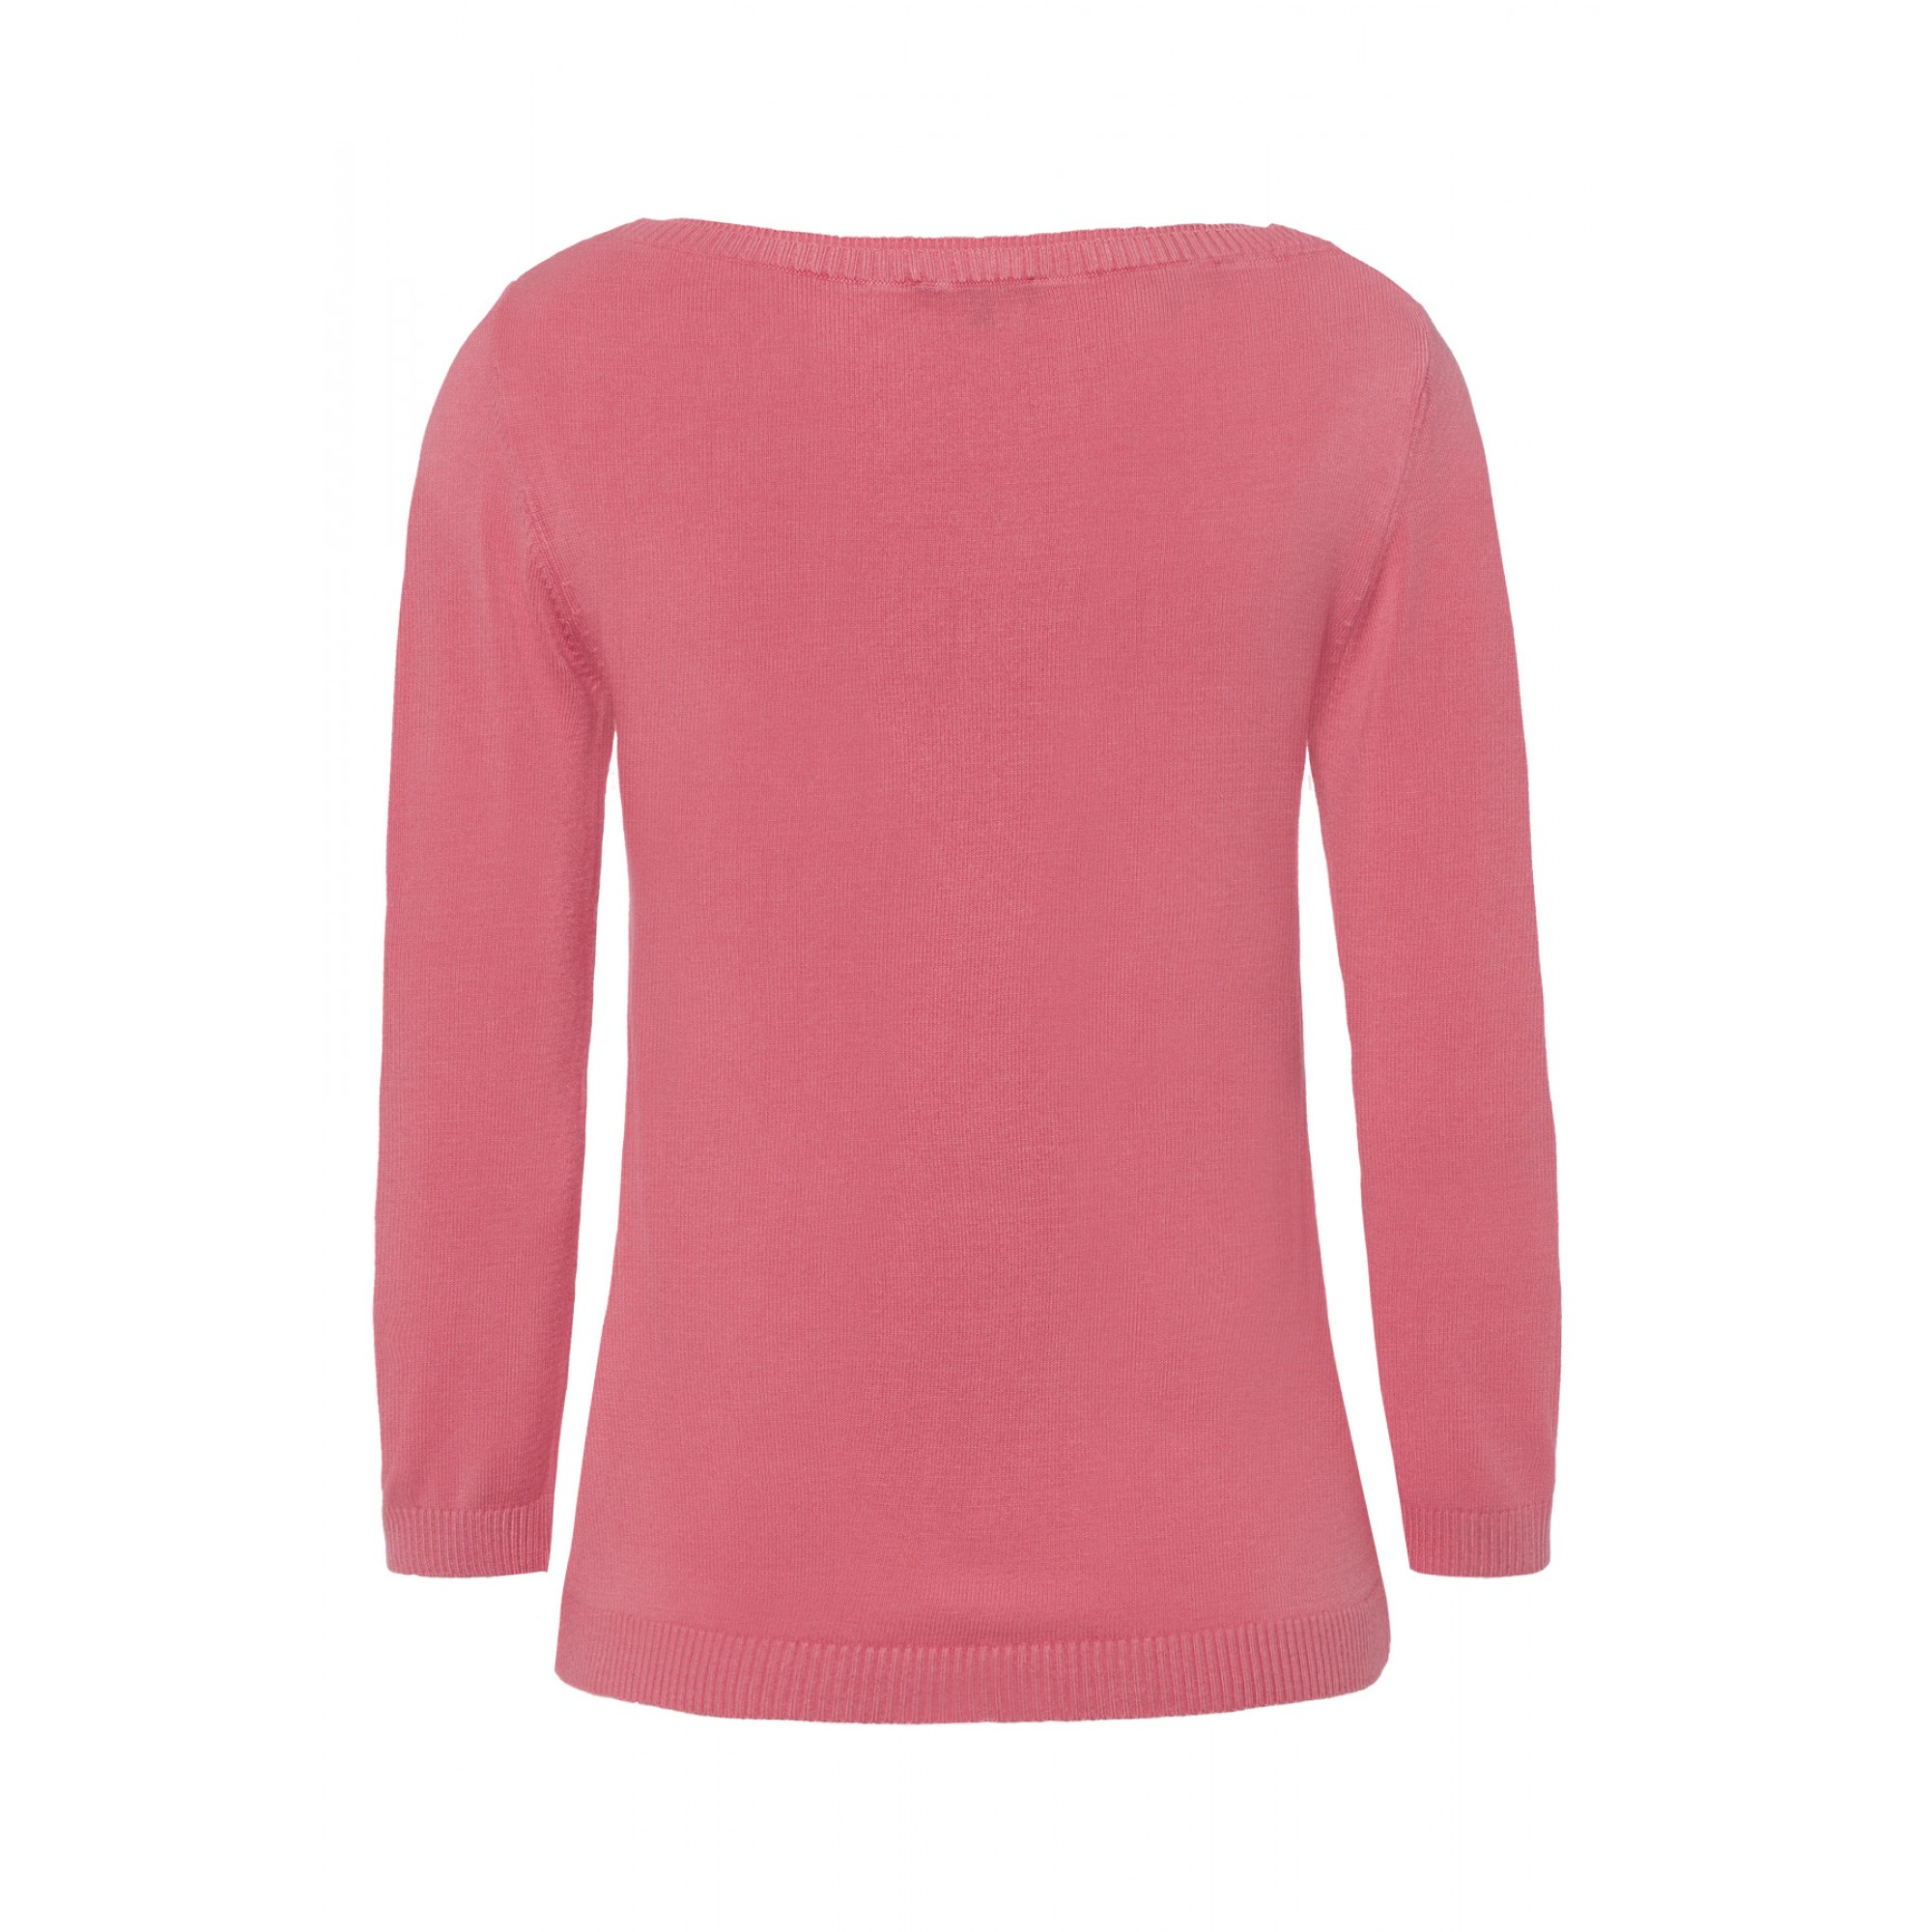 U-Boot Pullover, sugar rose 01011006-0820 2